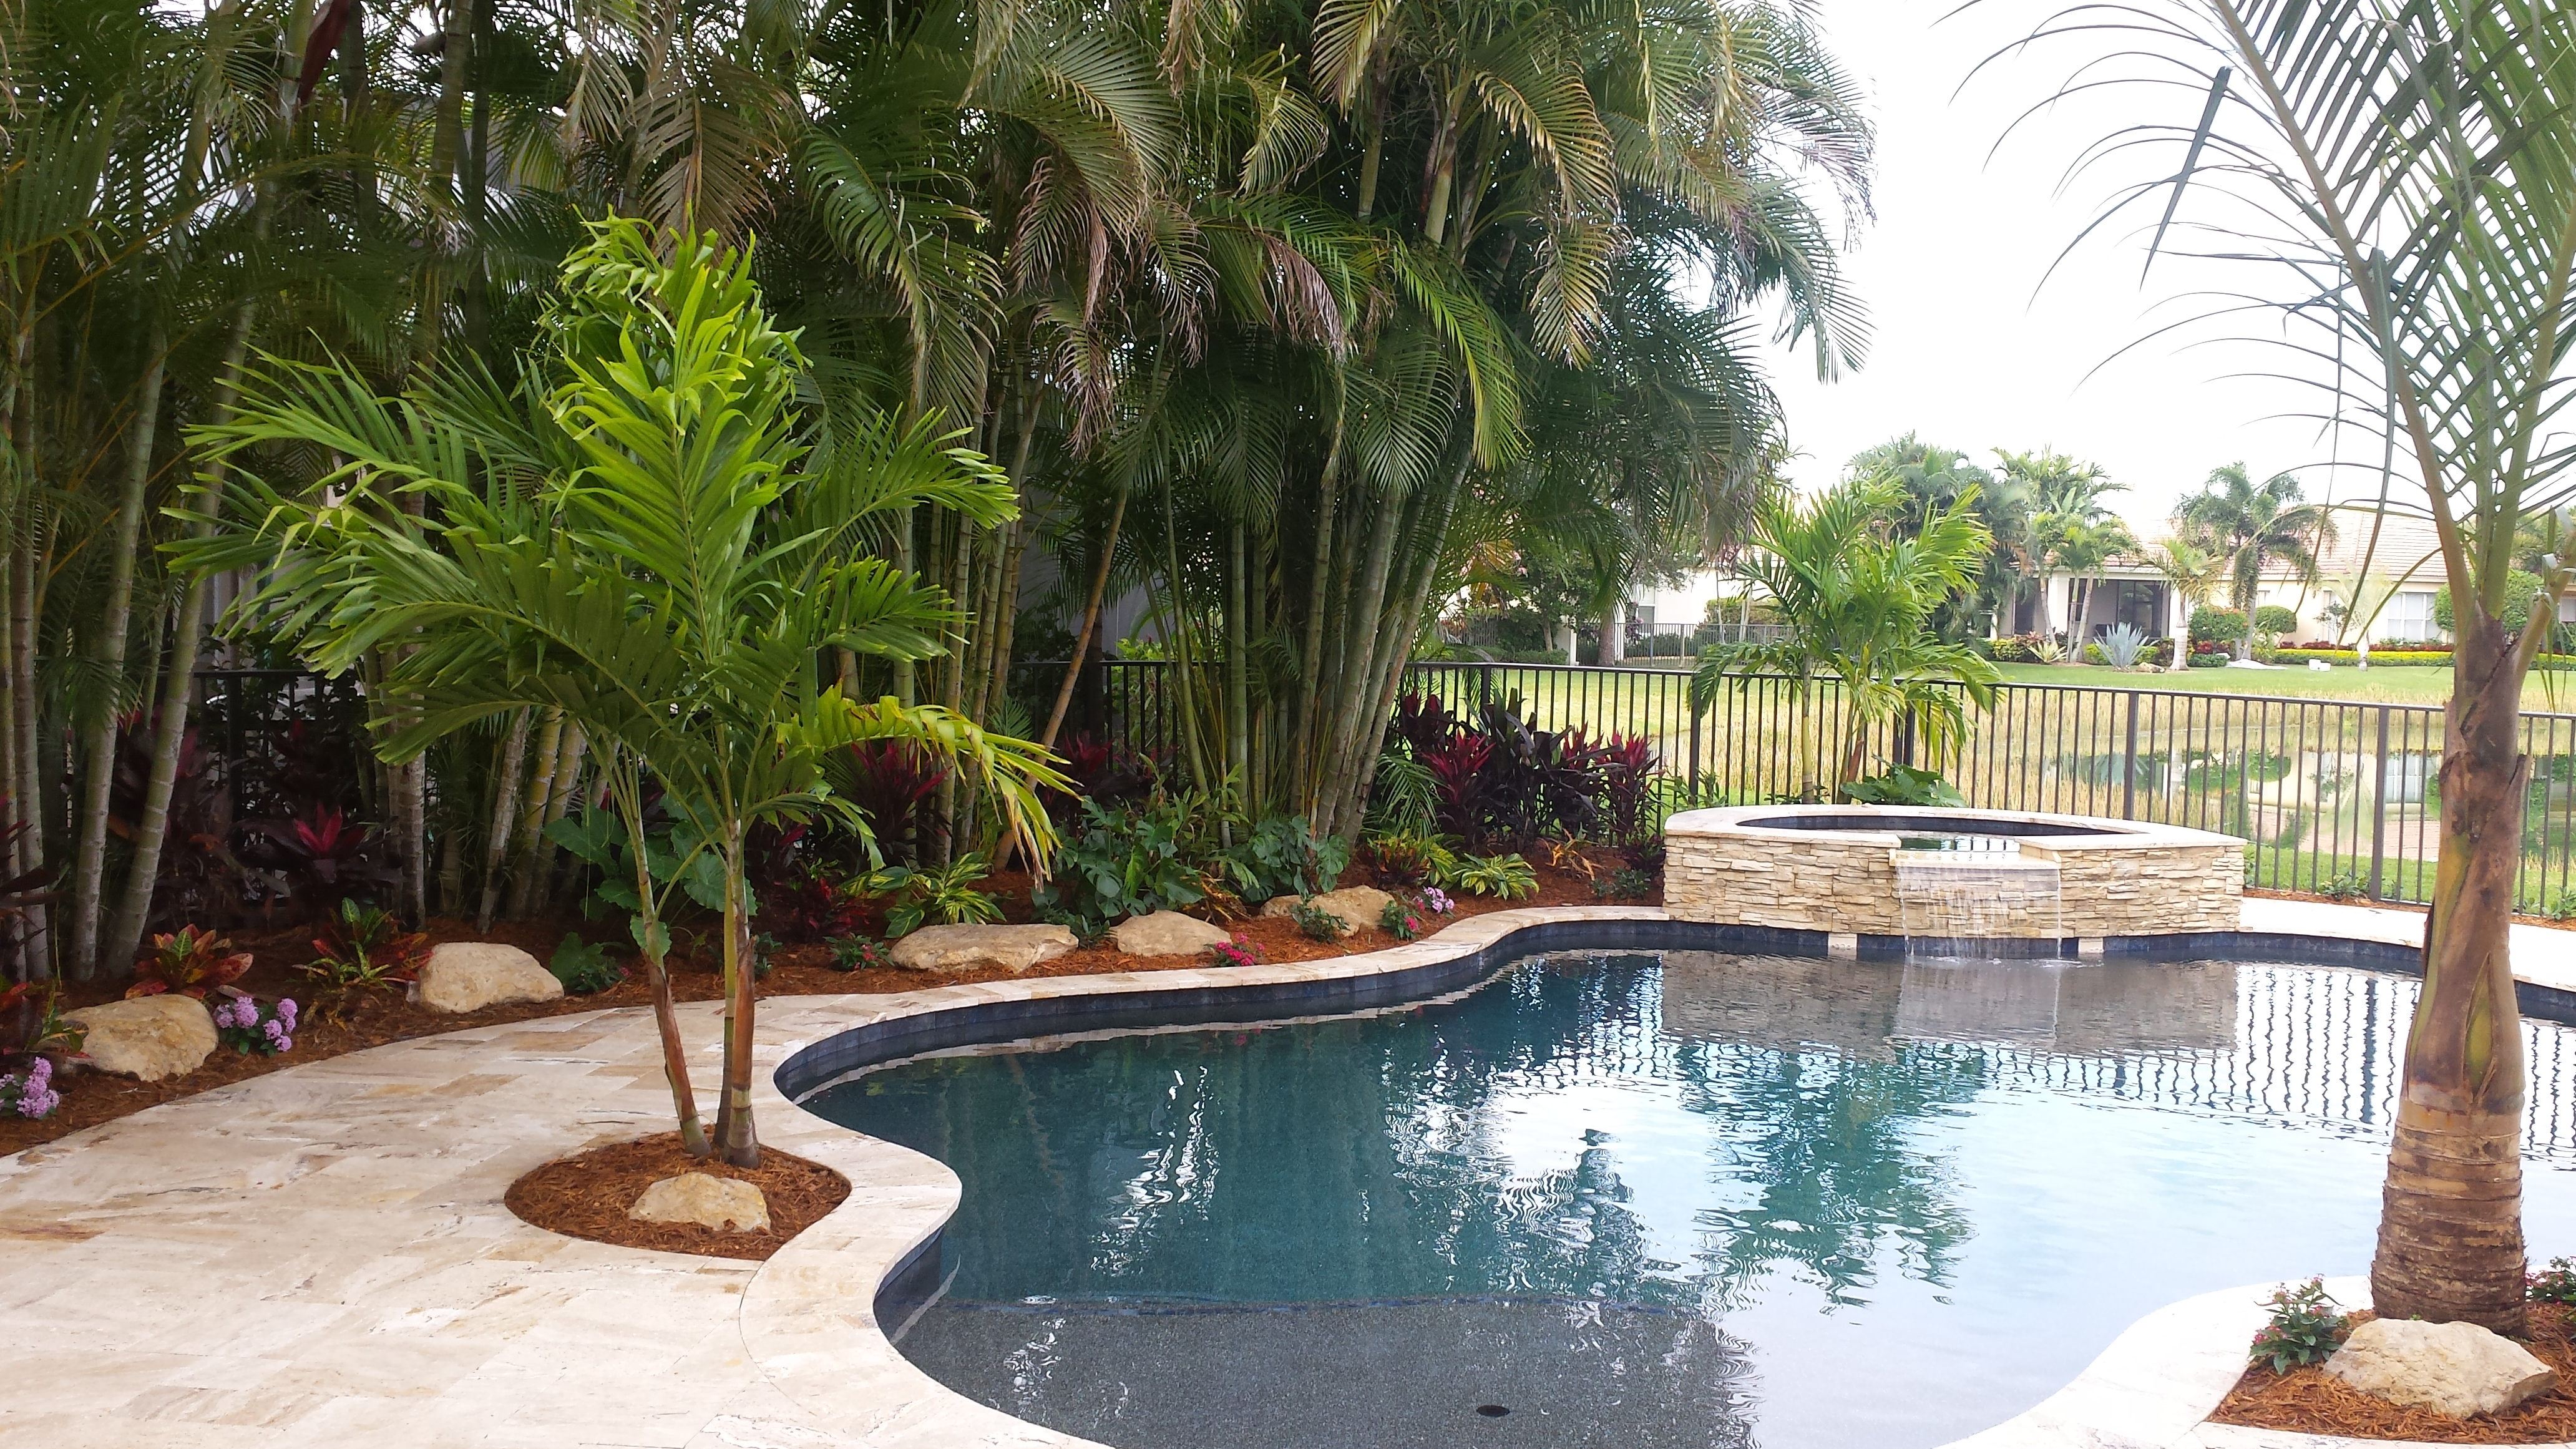 New swimming pool landscape palm beach gardens universal landscape inc - Palm beach swimming pool ...